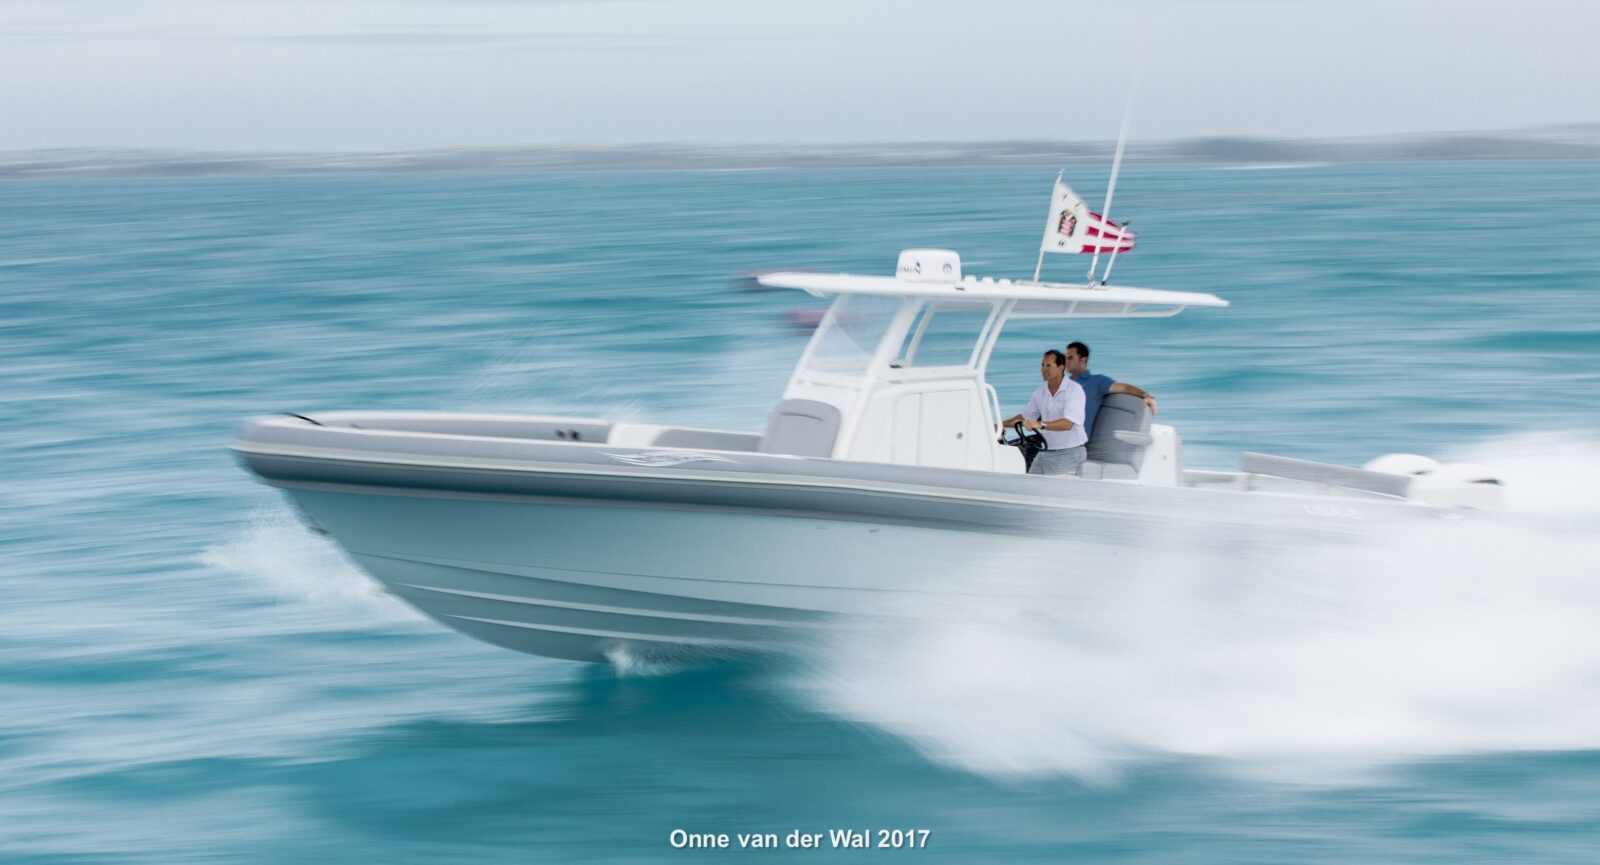 Ocean 1 delivers first yacht tender